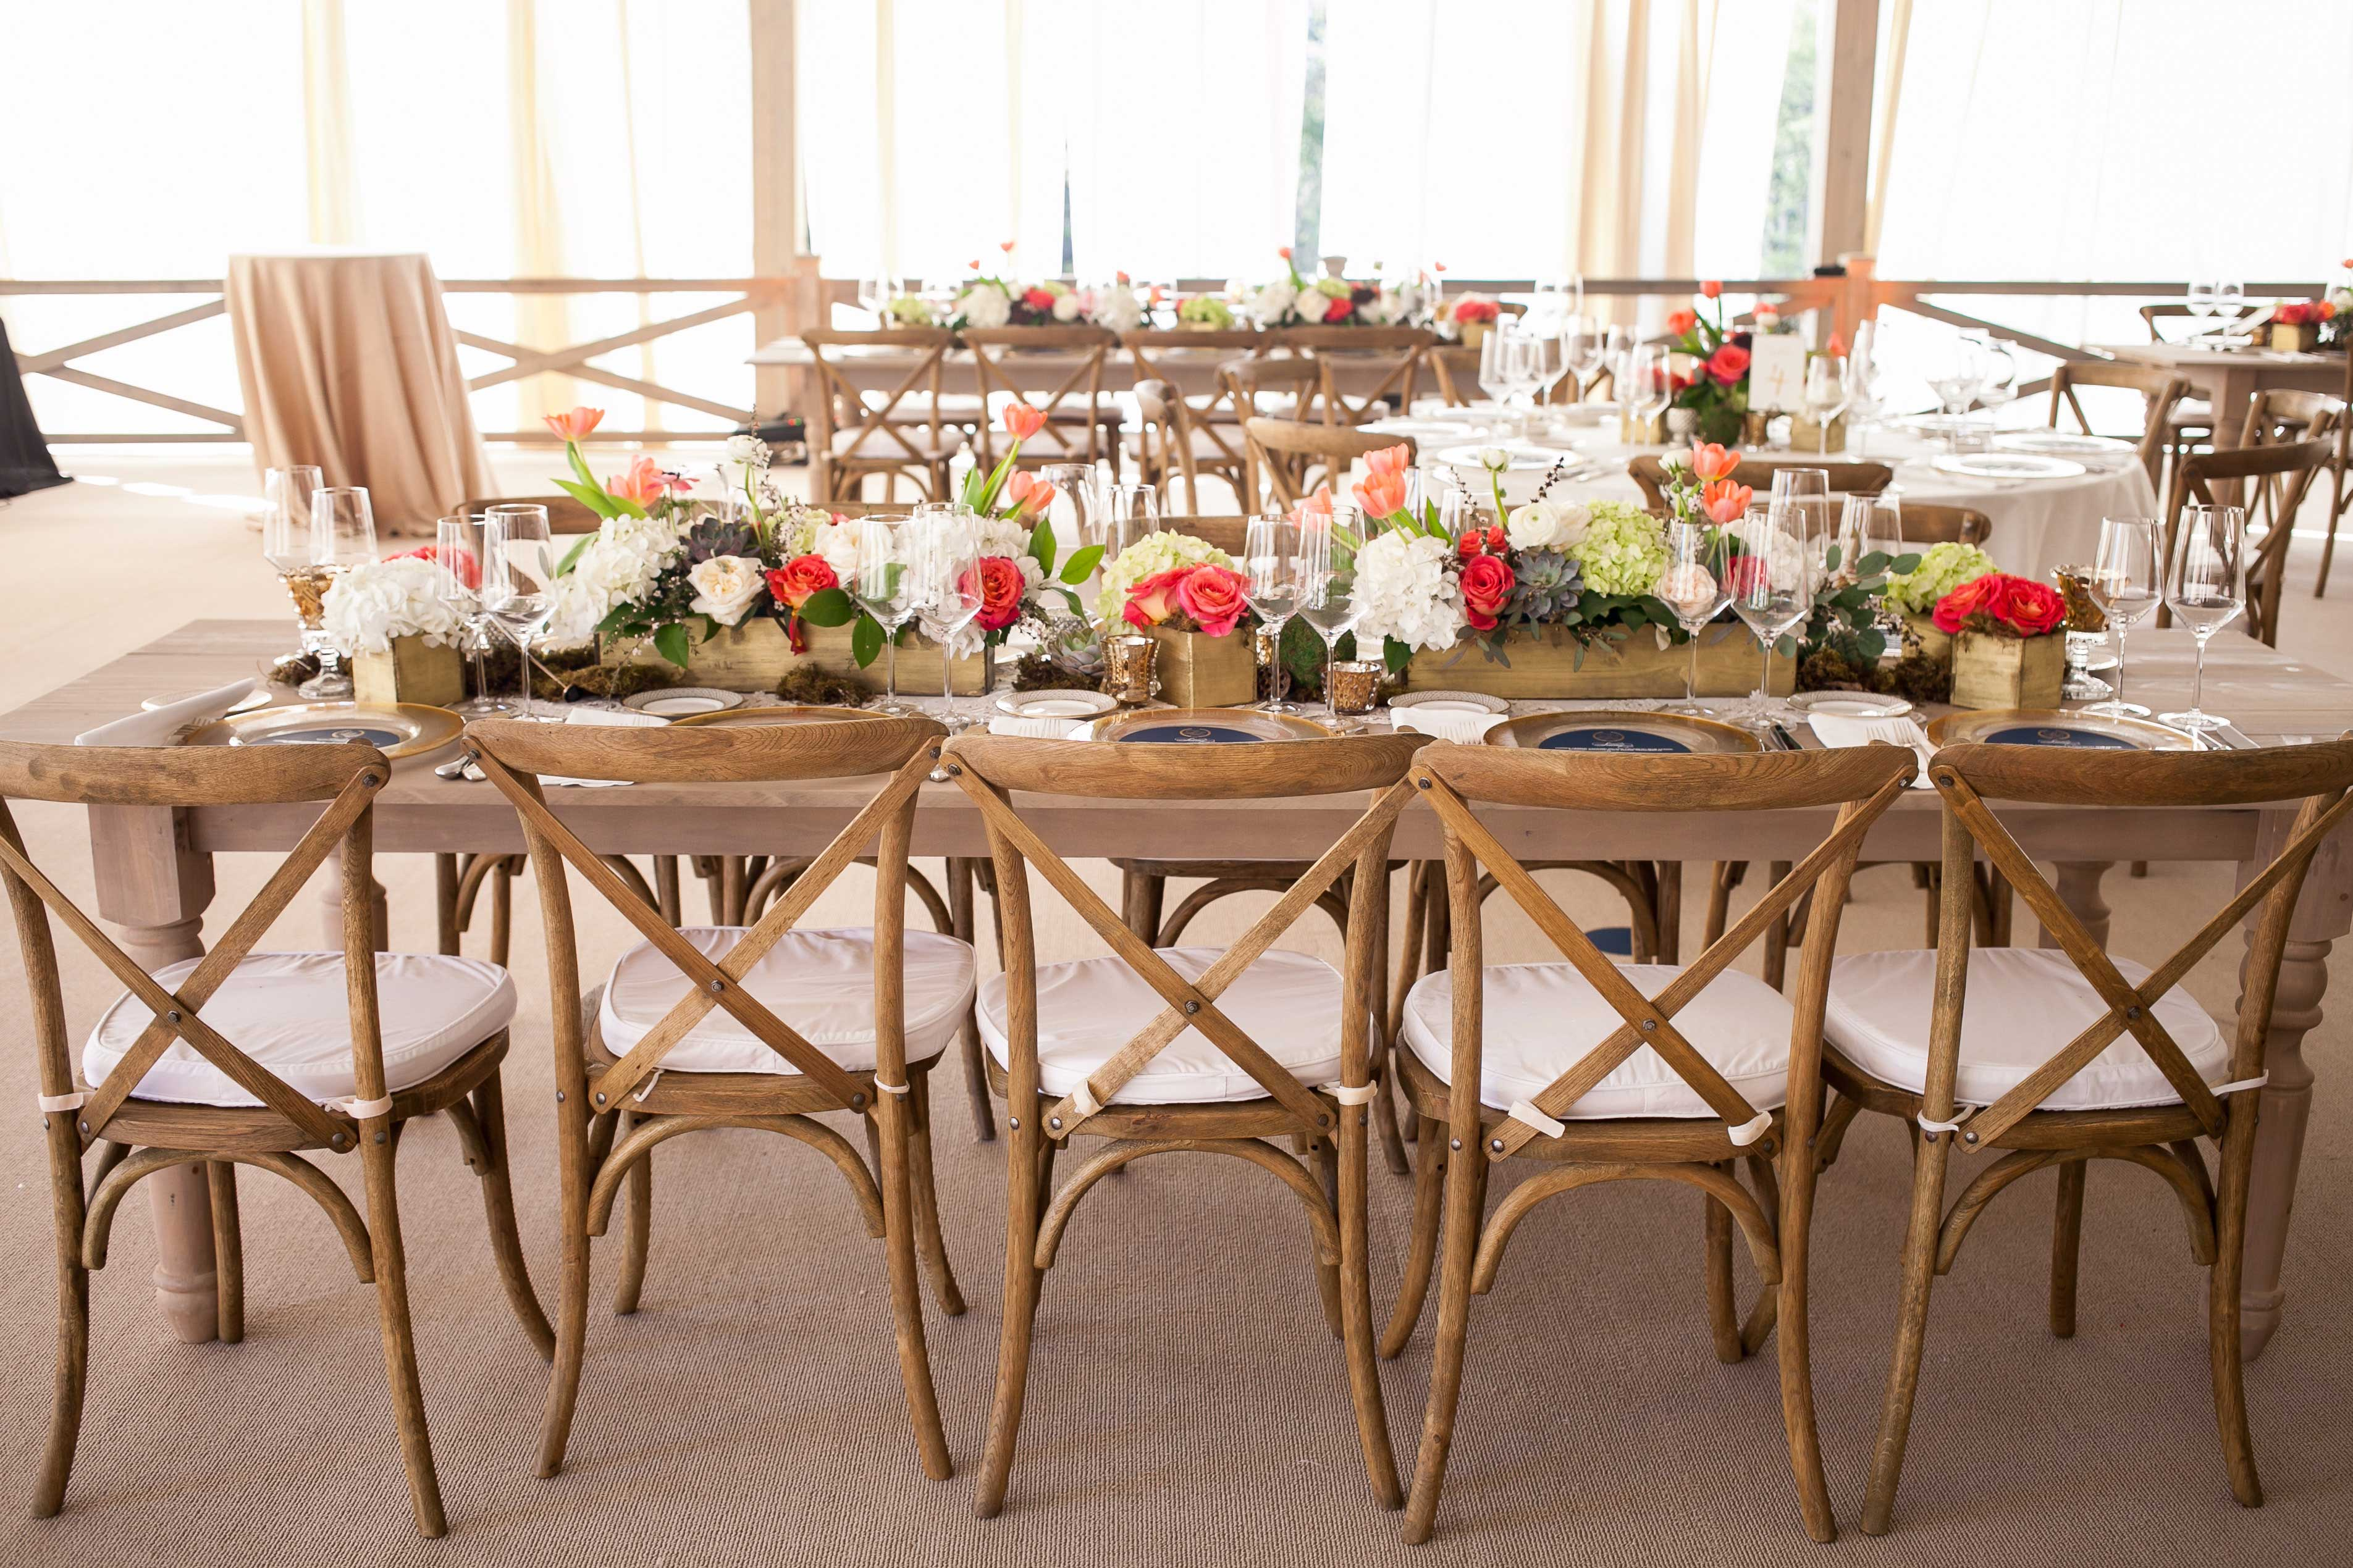 7 planter boxes to use for your rustic wedding reception rustic wooden boxes to house floral centerpieces for your austere nuptials junglespirit Images